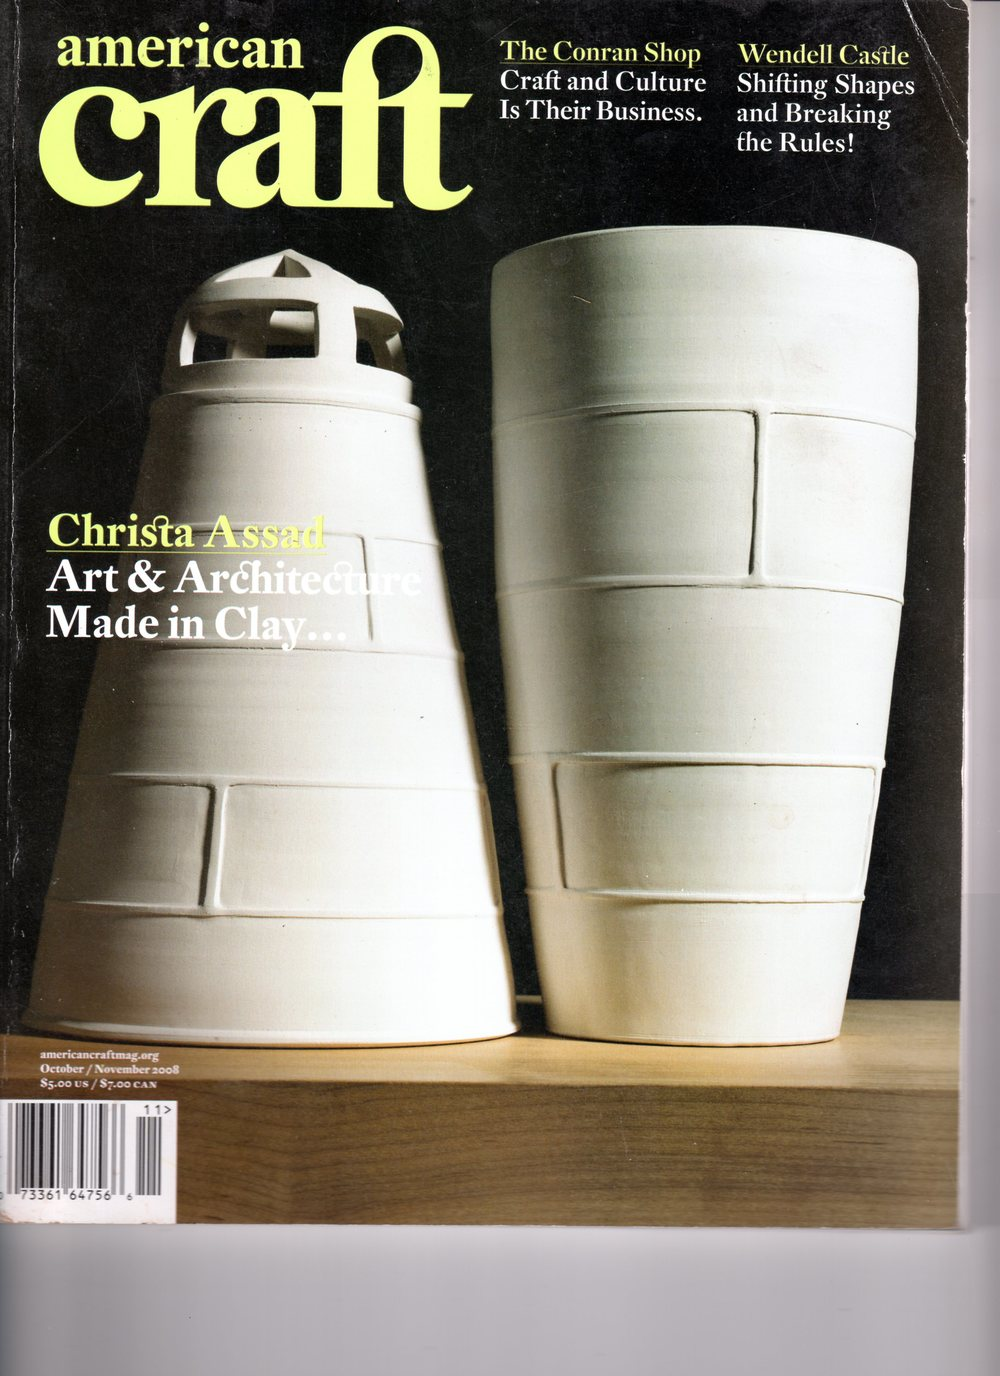 American Craft October 2008 cover.jpg